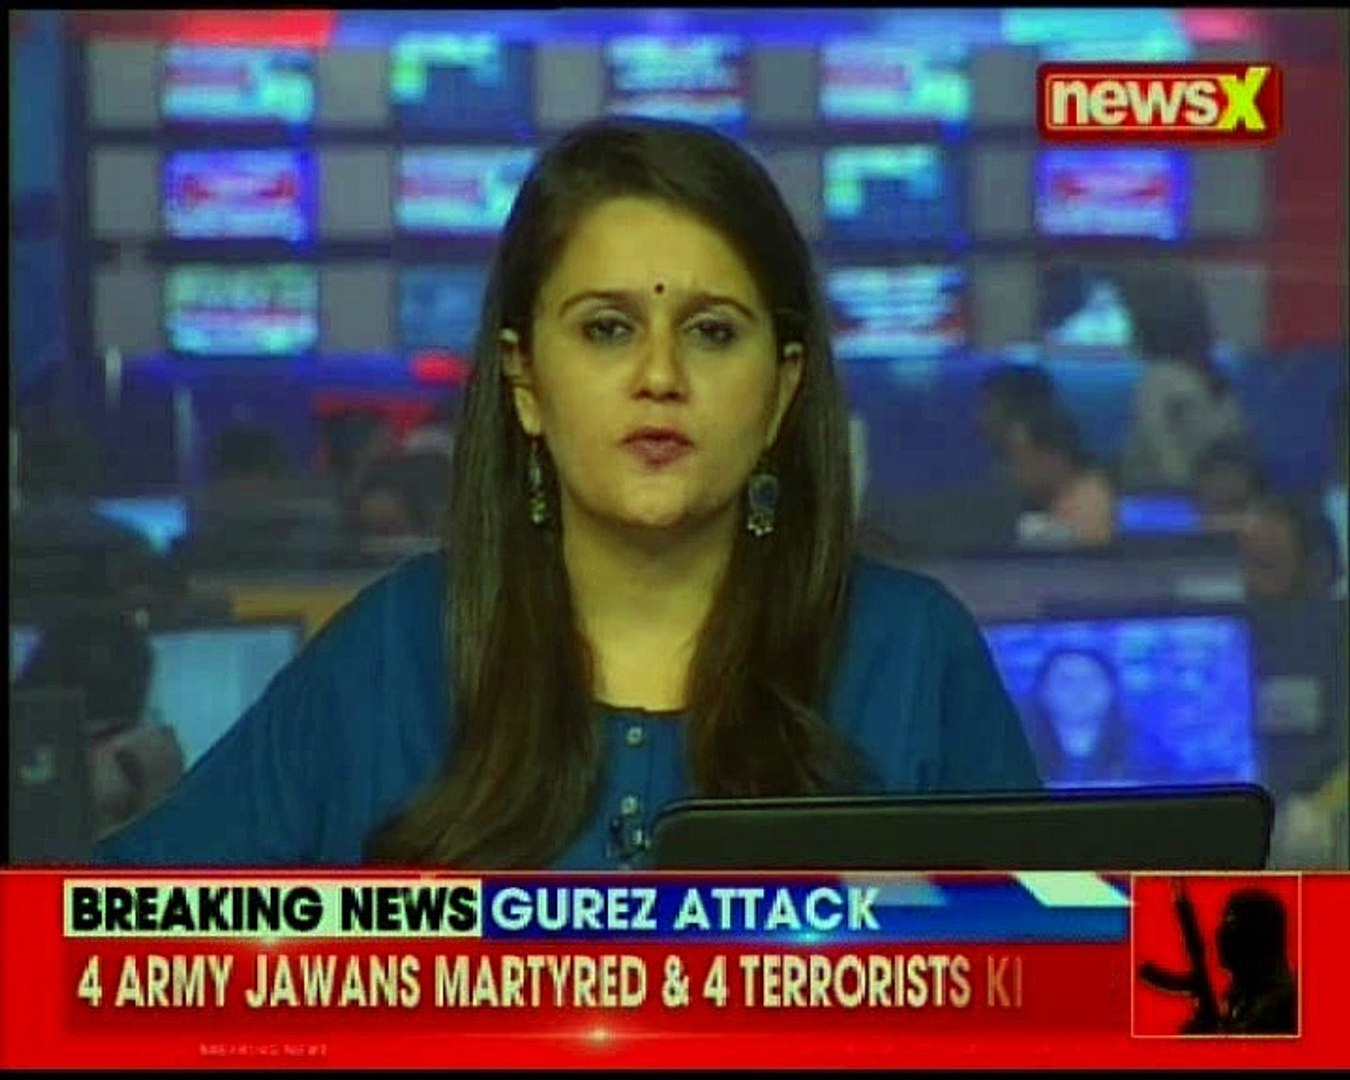 Yet again rogue Pakistan targets forces, 4 Army Jawans martryed